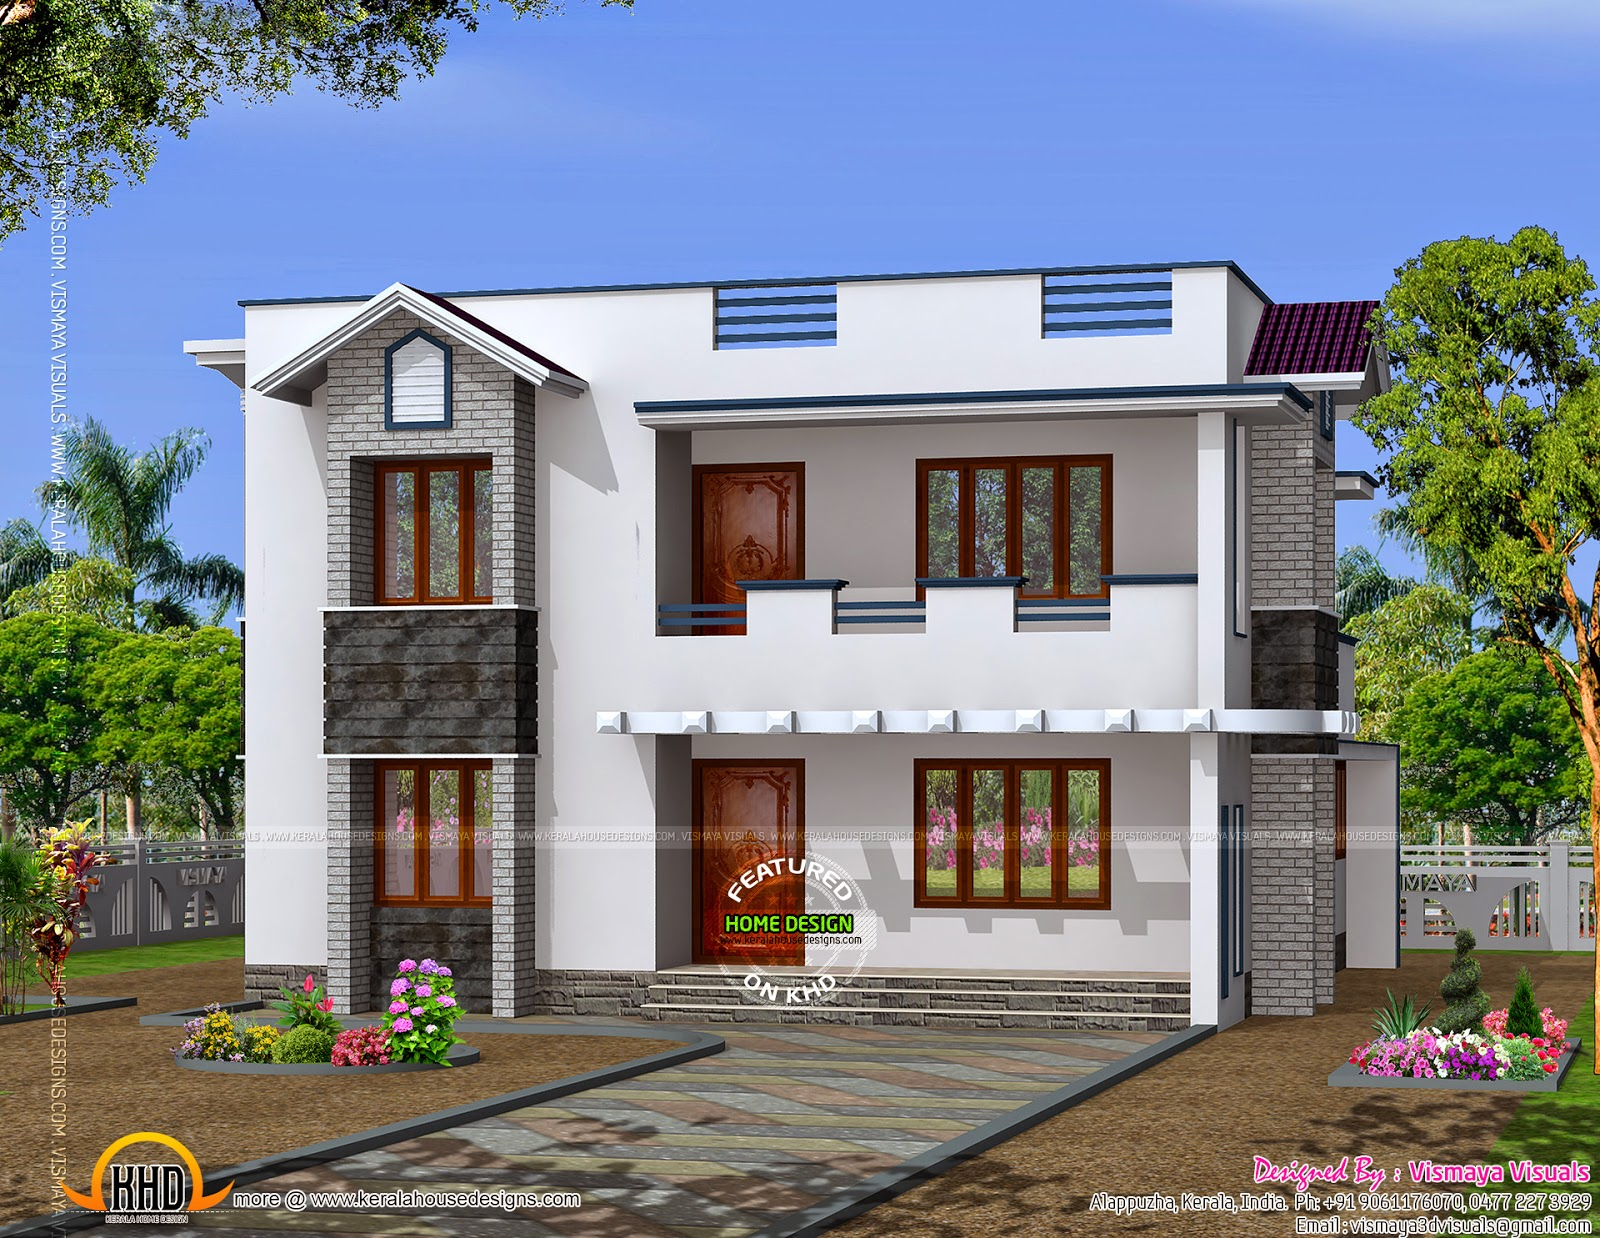 Simple design home kerala home design and floor plans for Home design images